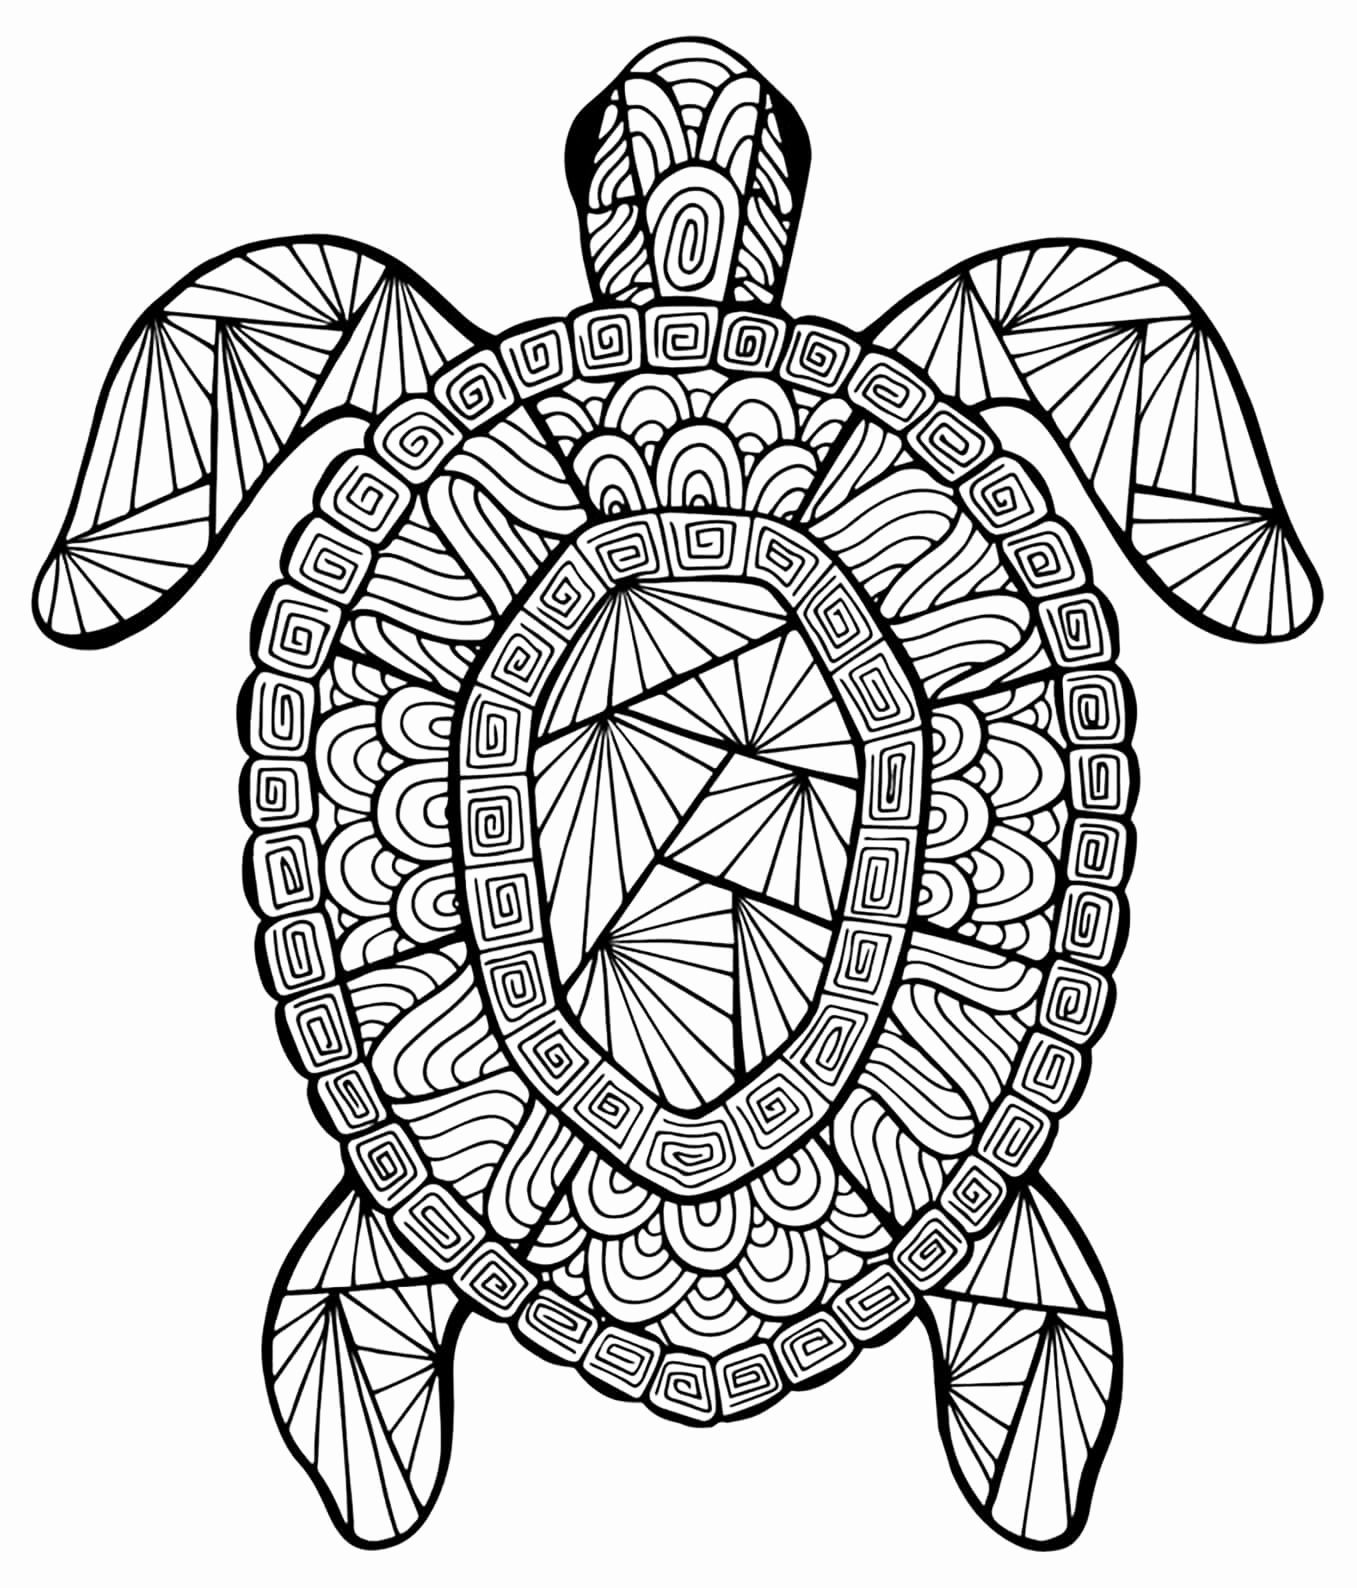 Coloring Pages Hard Animals Best Of Coloring Pages For